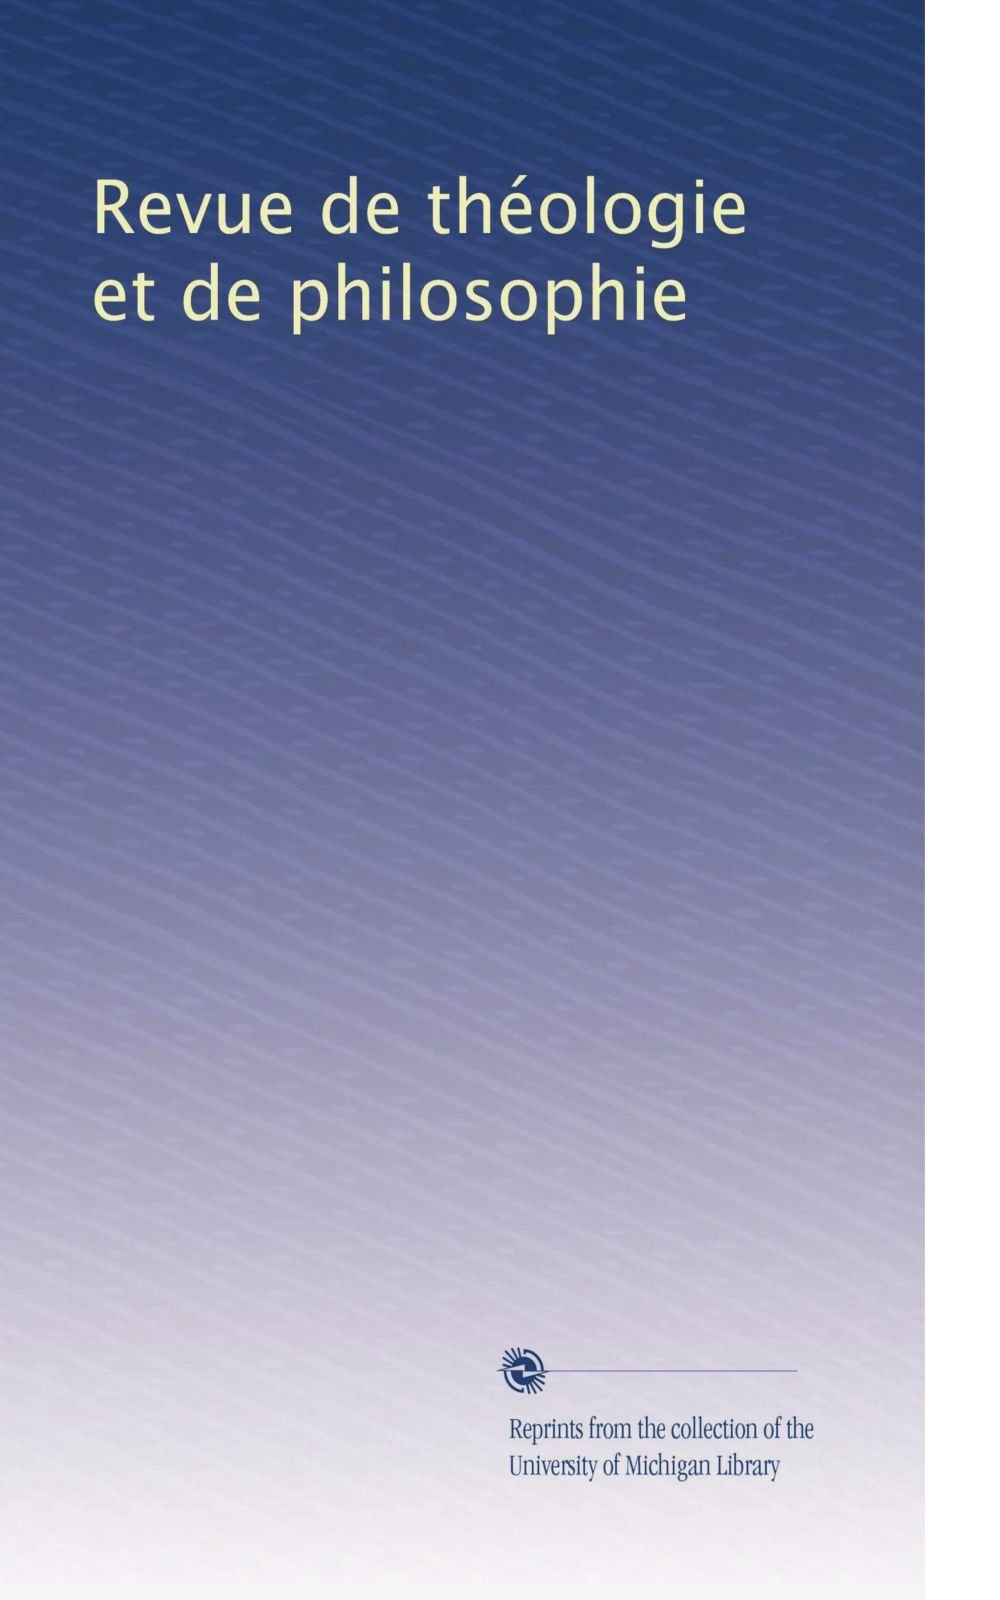 Download Revue de théologie et de philosophie (Volume 26) (French Edition) ebook